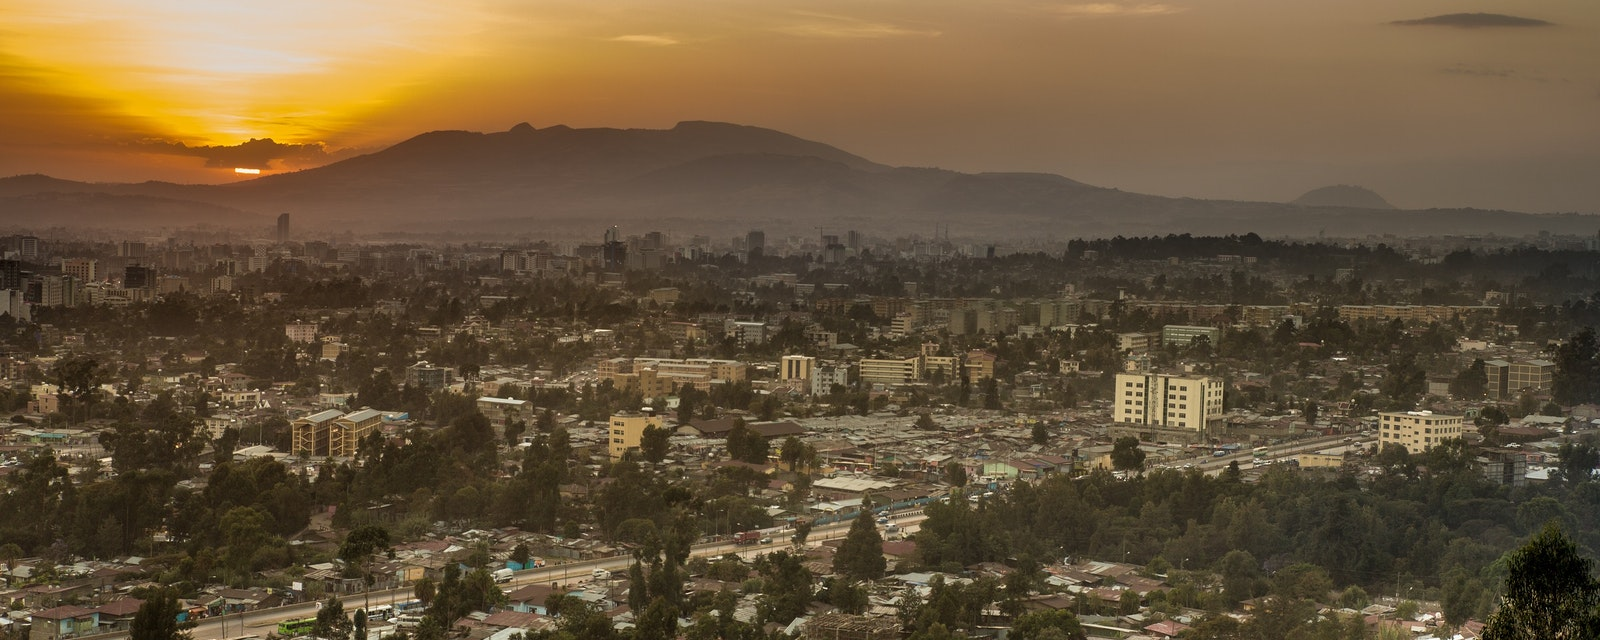 Aerial,View,Of,The,City,Of,Addis,Ababa,During,Sunset